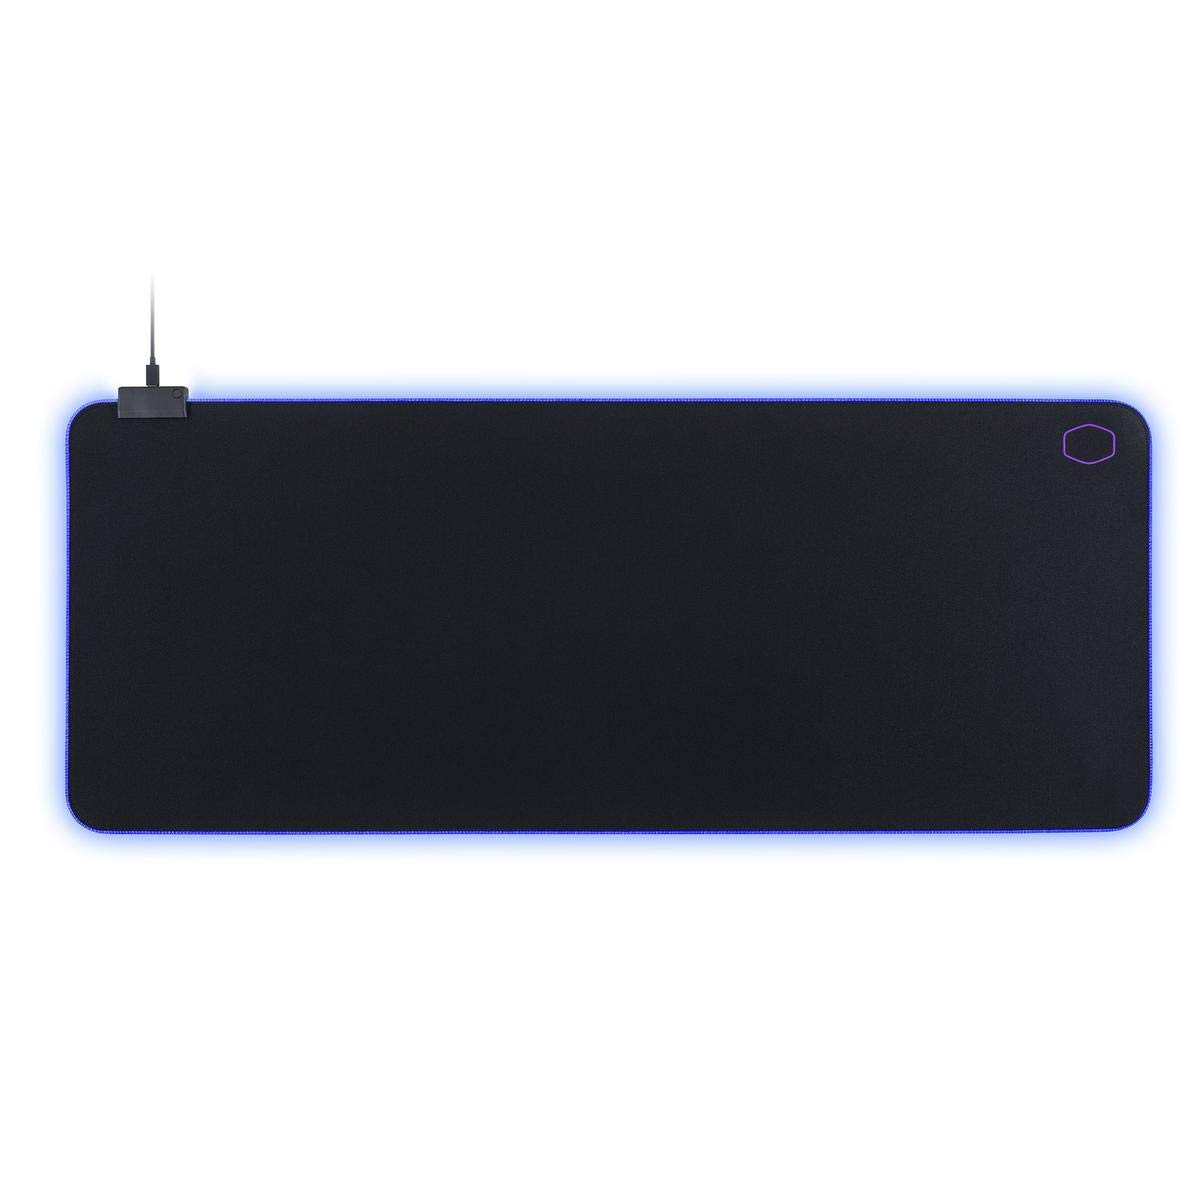 COOLER MASTER MASTERACCESSORY MP750 XL LED 940X380MM MOUSE PAD